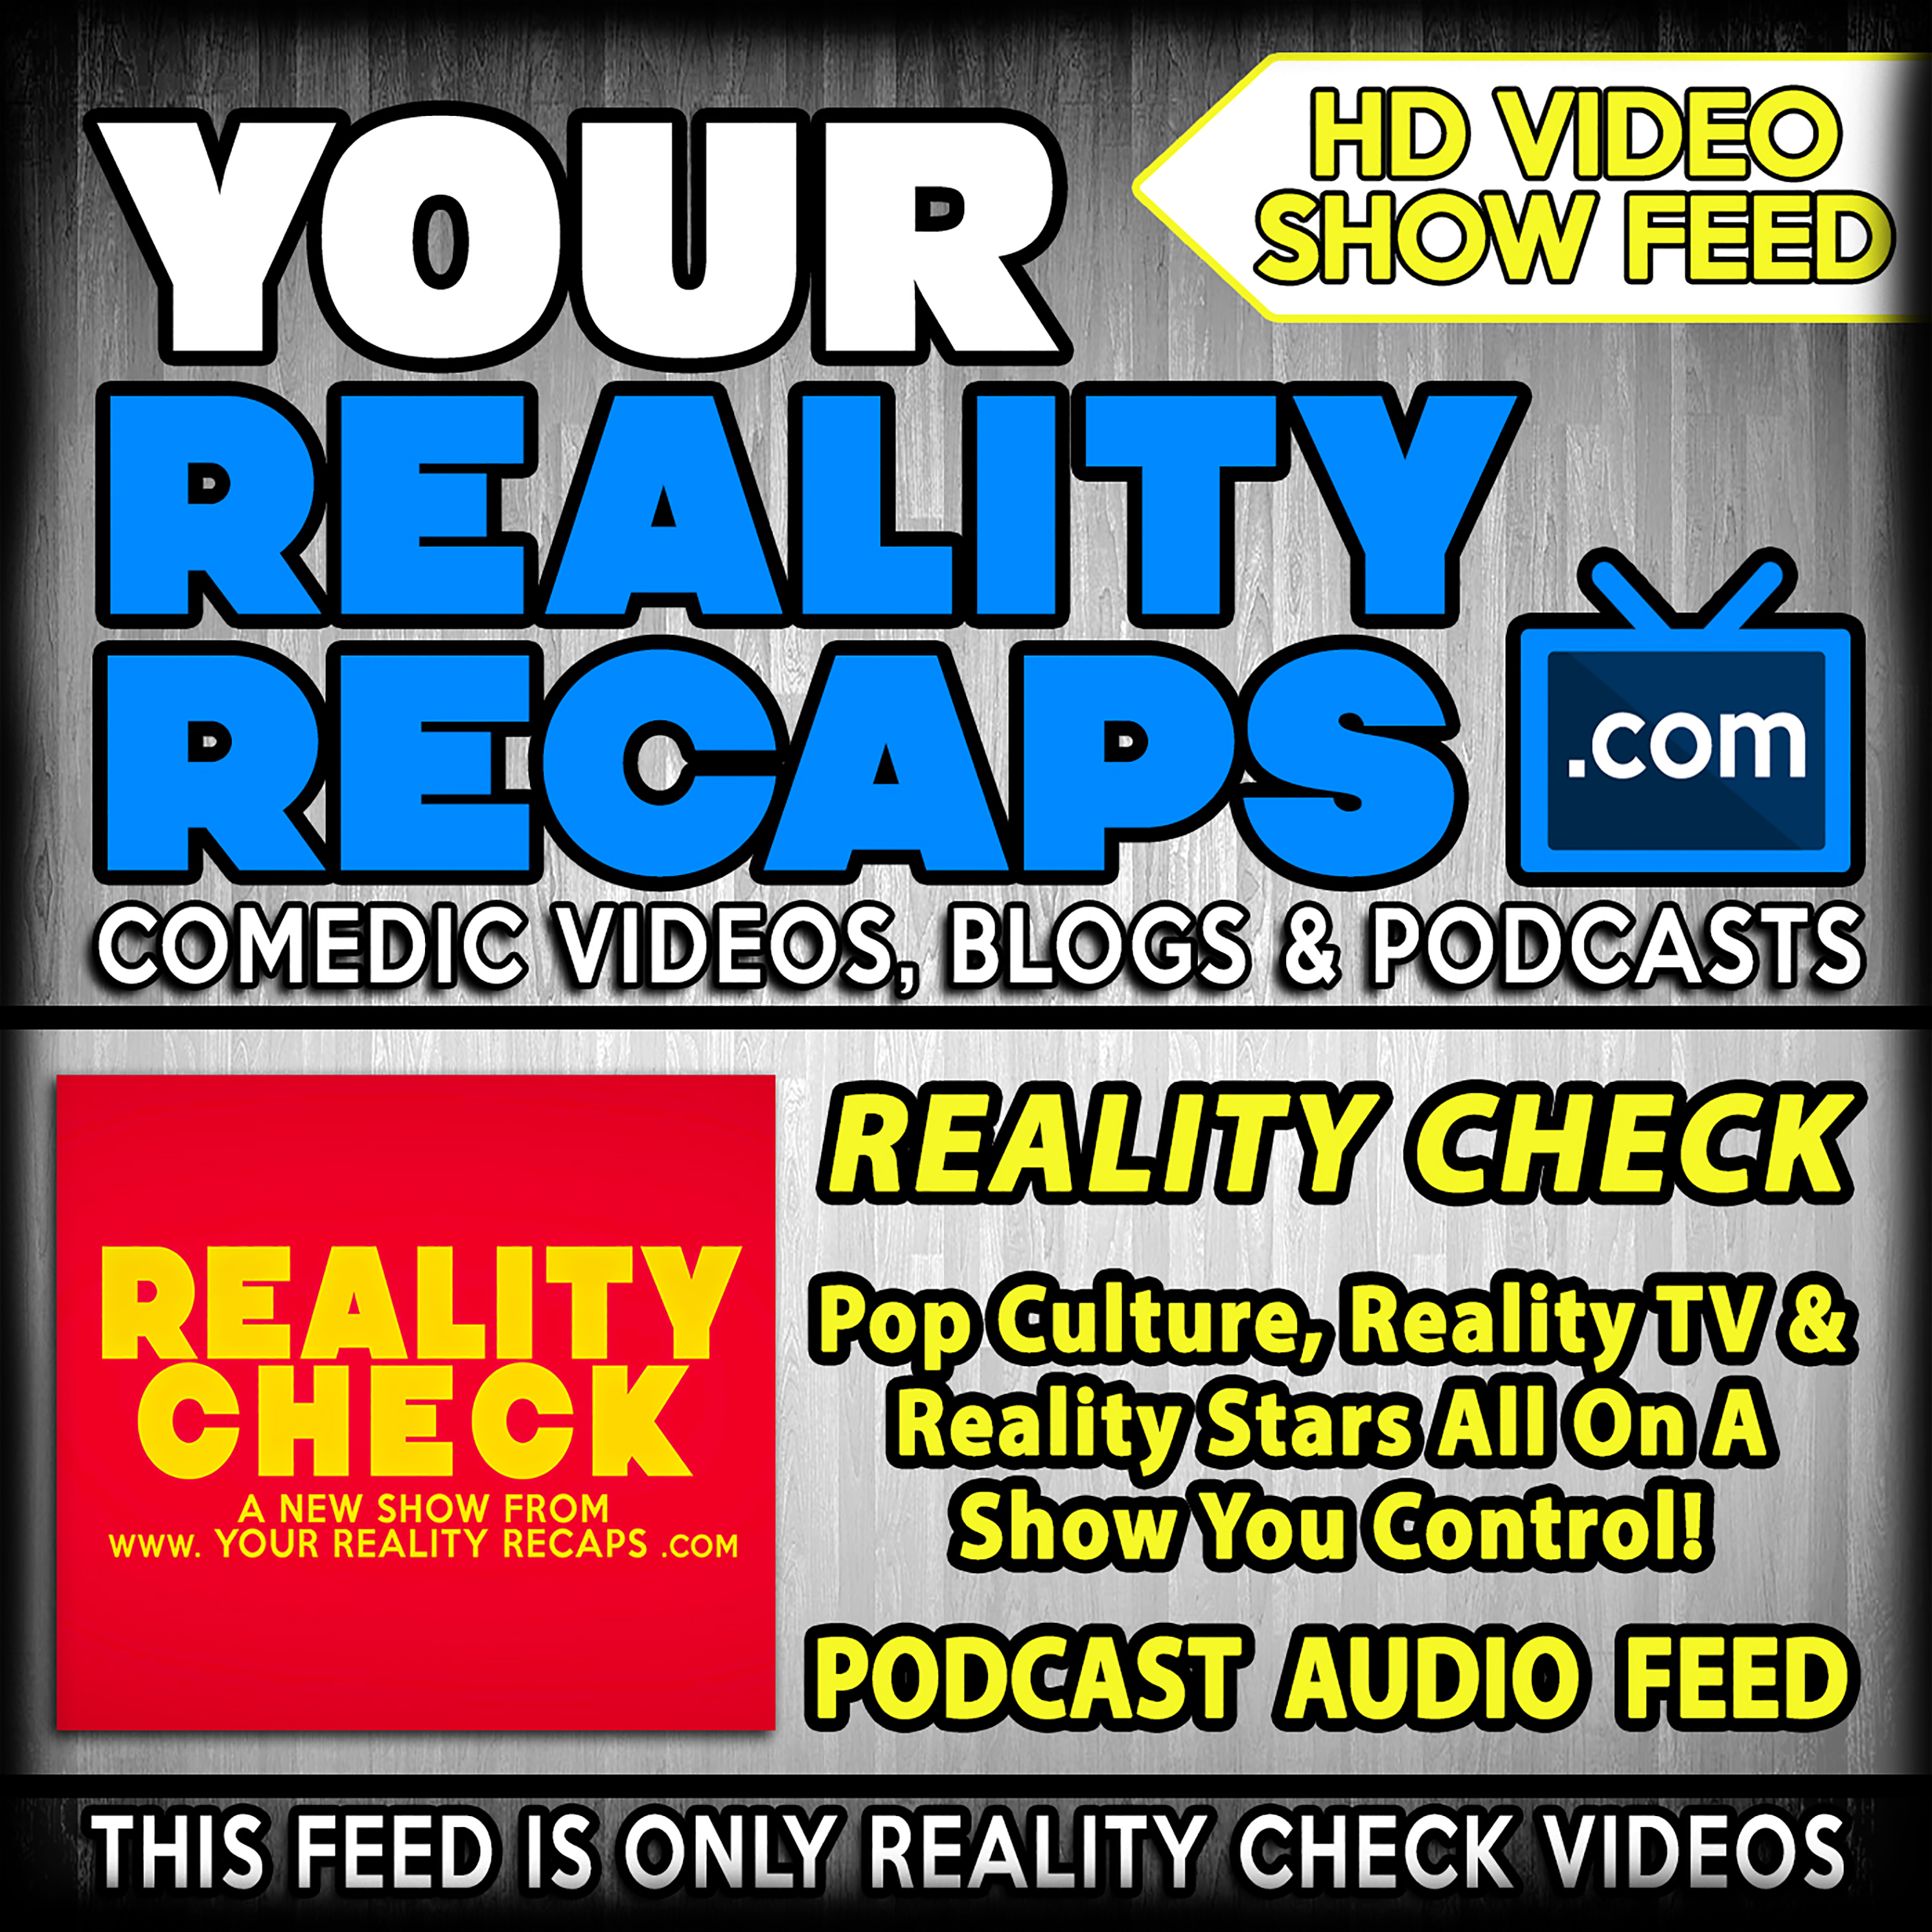 Your Reality Recaps:  Reality Check Show Video